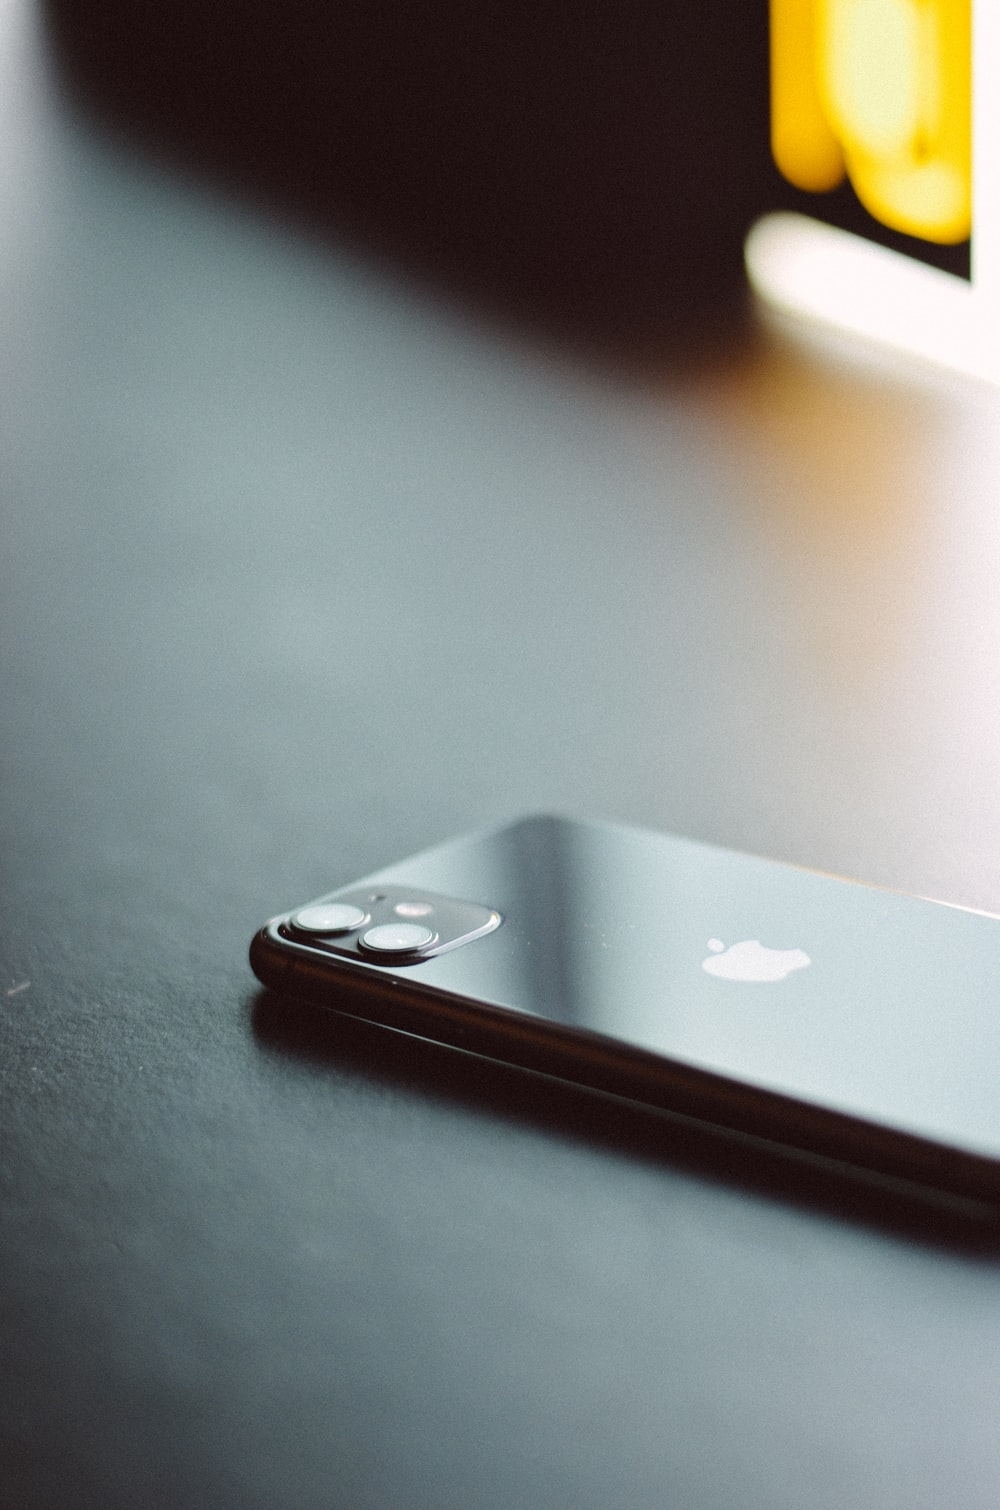 silver iphone 6 on black table